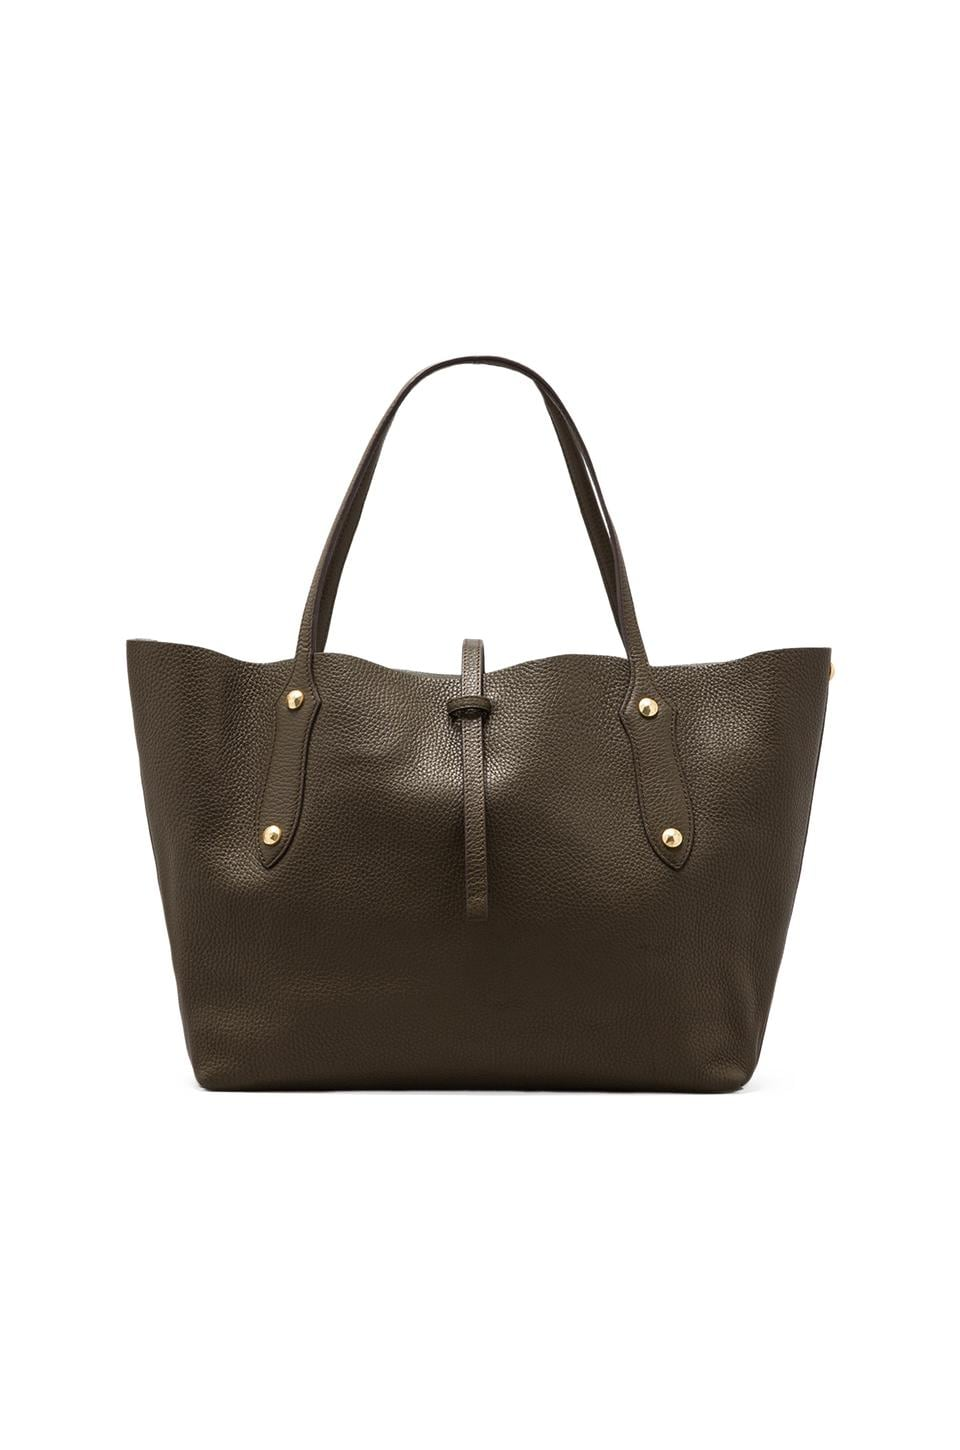 Annabel Ingall Small Isabella Tote in Military